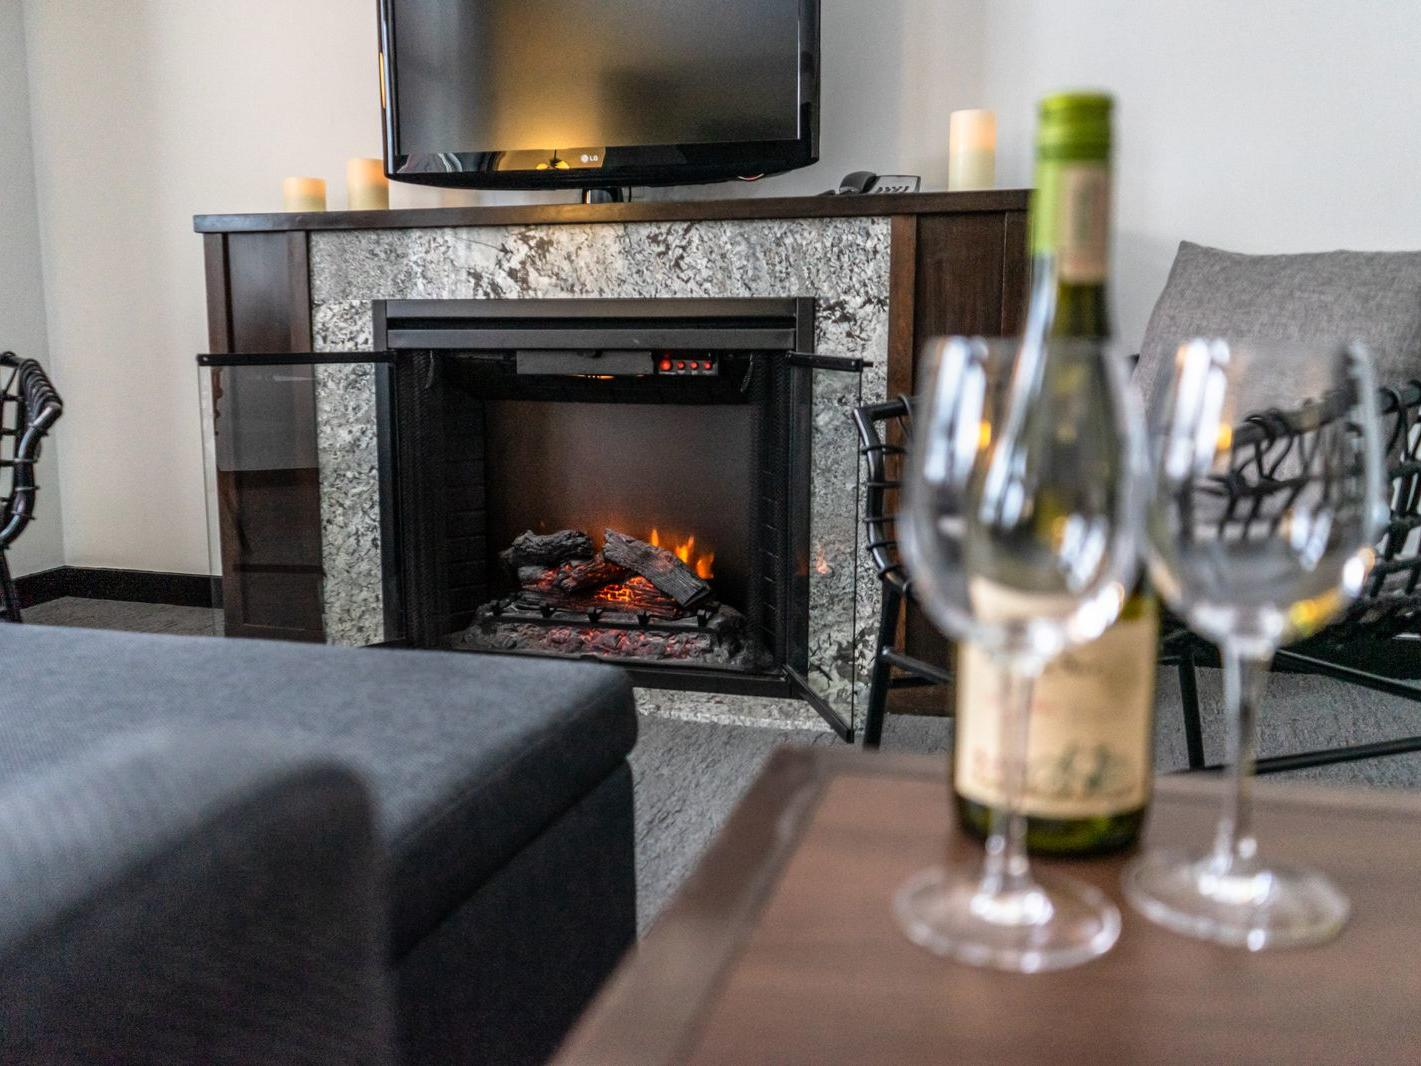 Wine bottle and glasses on table next to couch facing tv and fireplace